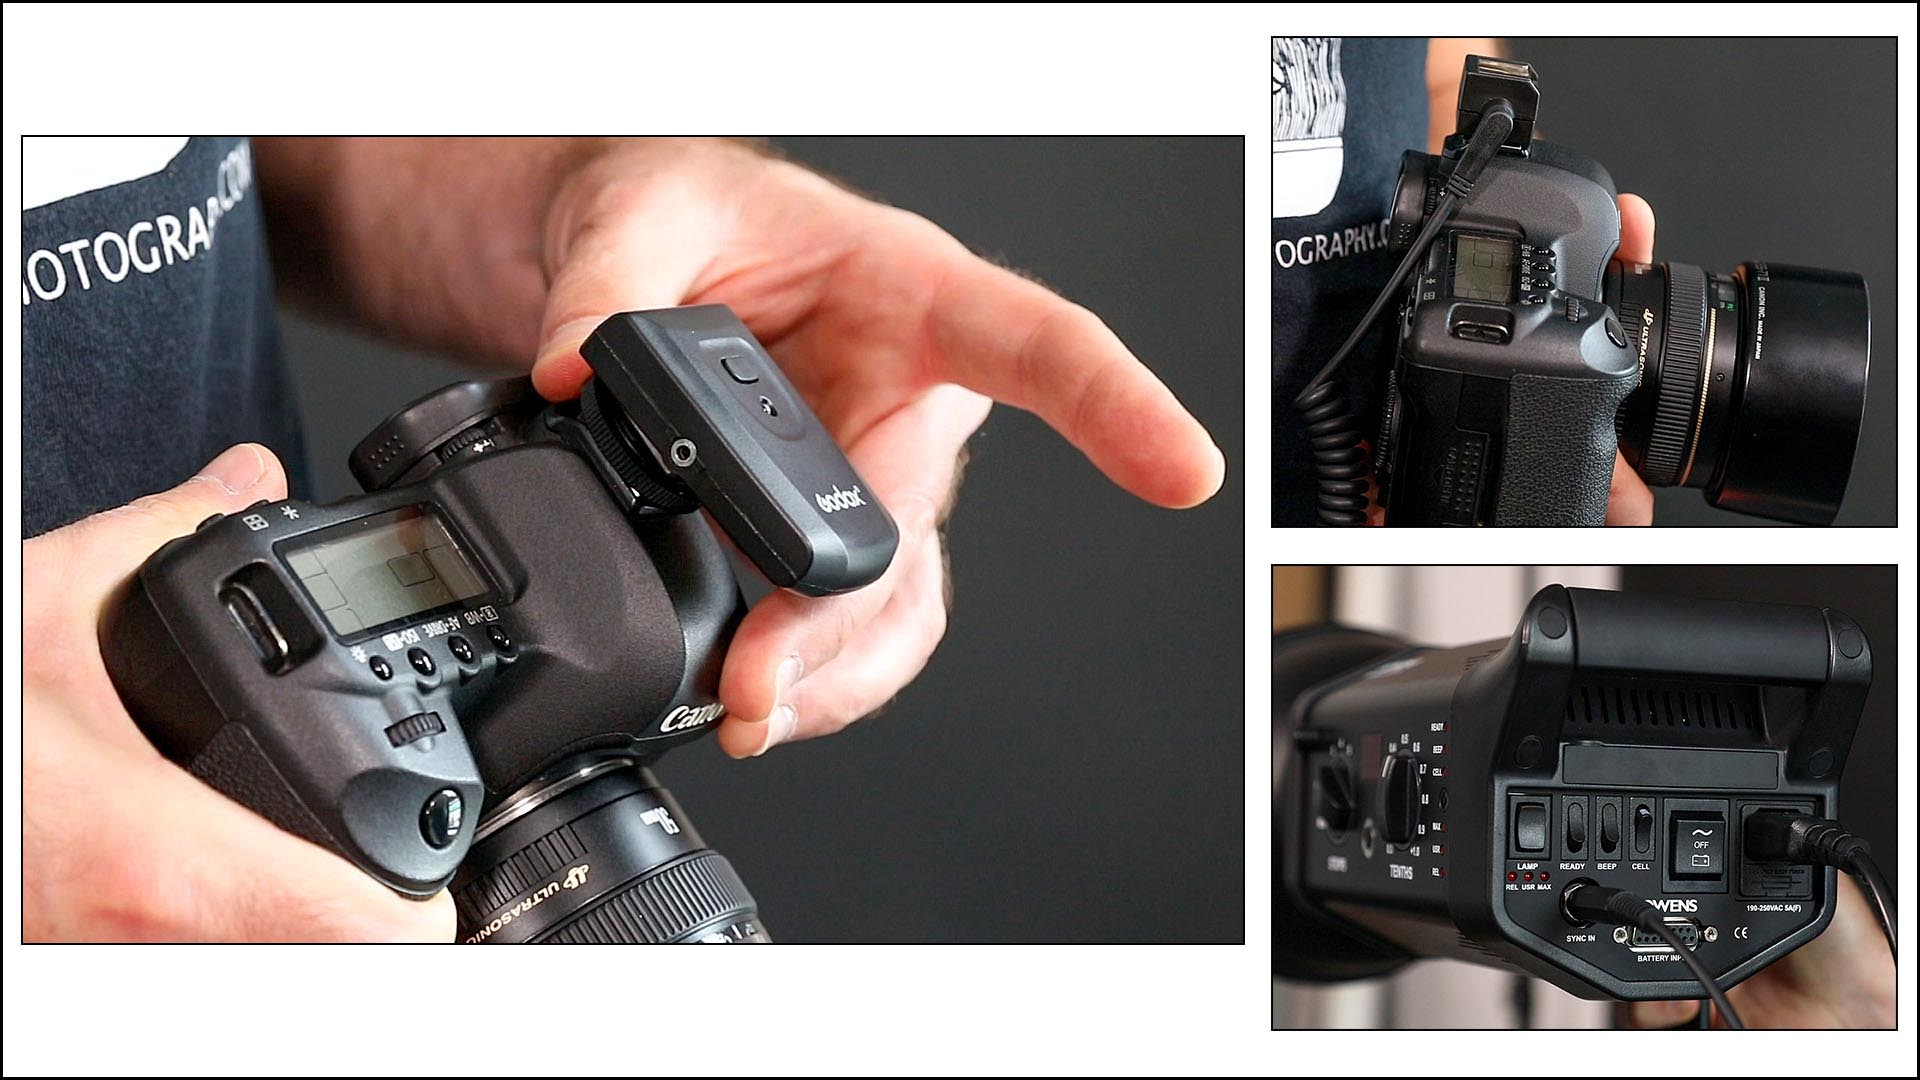 Lesson 5 – Connecting camera to flash heads - There are several ways to connect your camera to the flash heads. In this lesson you'll be taught the pros and cons between remote triggers and sync cords, and how to use them.